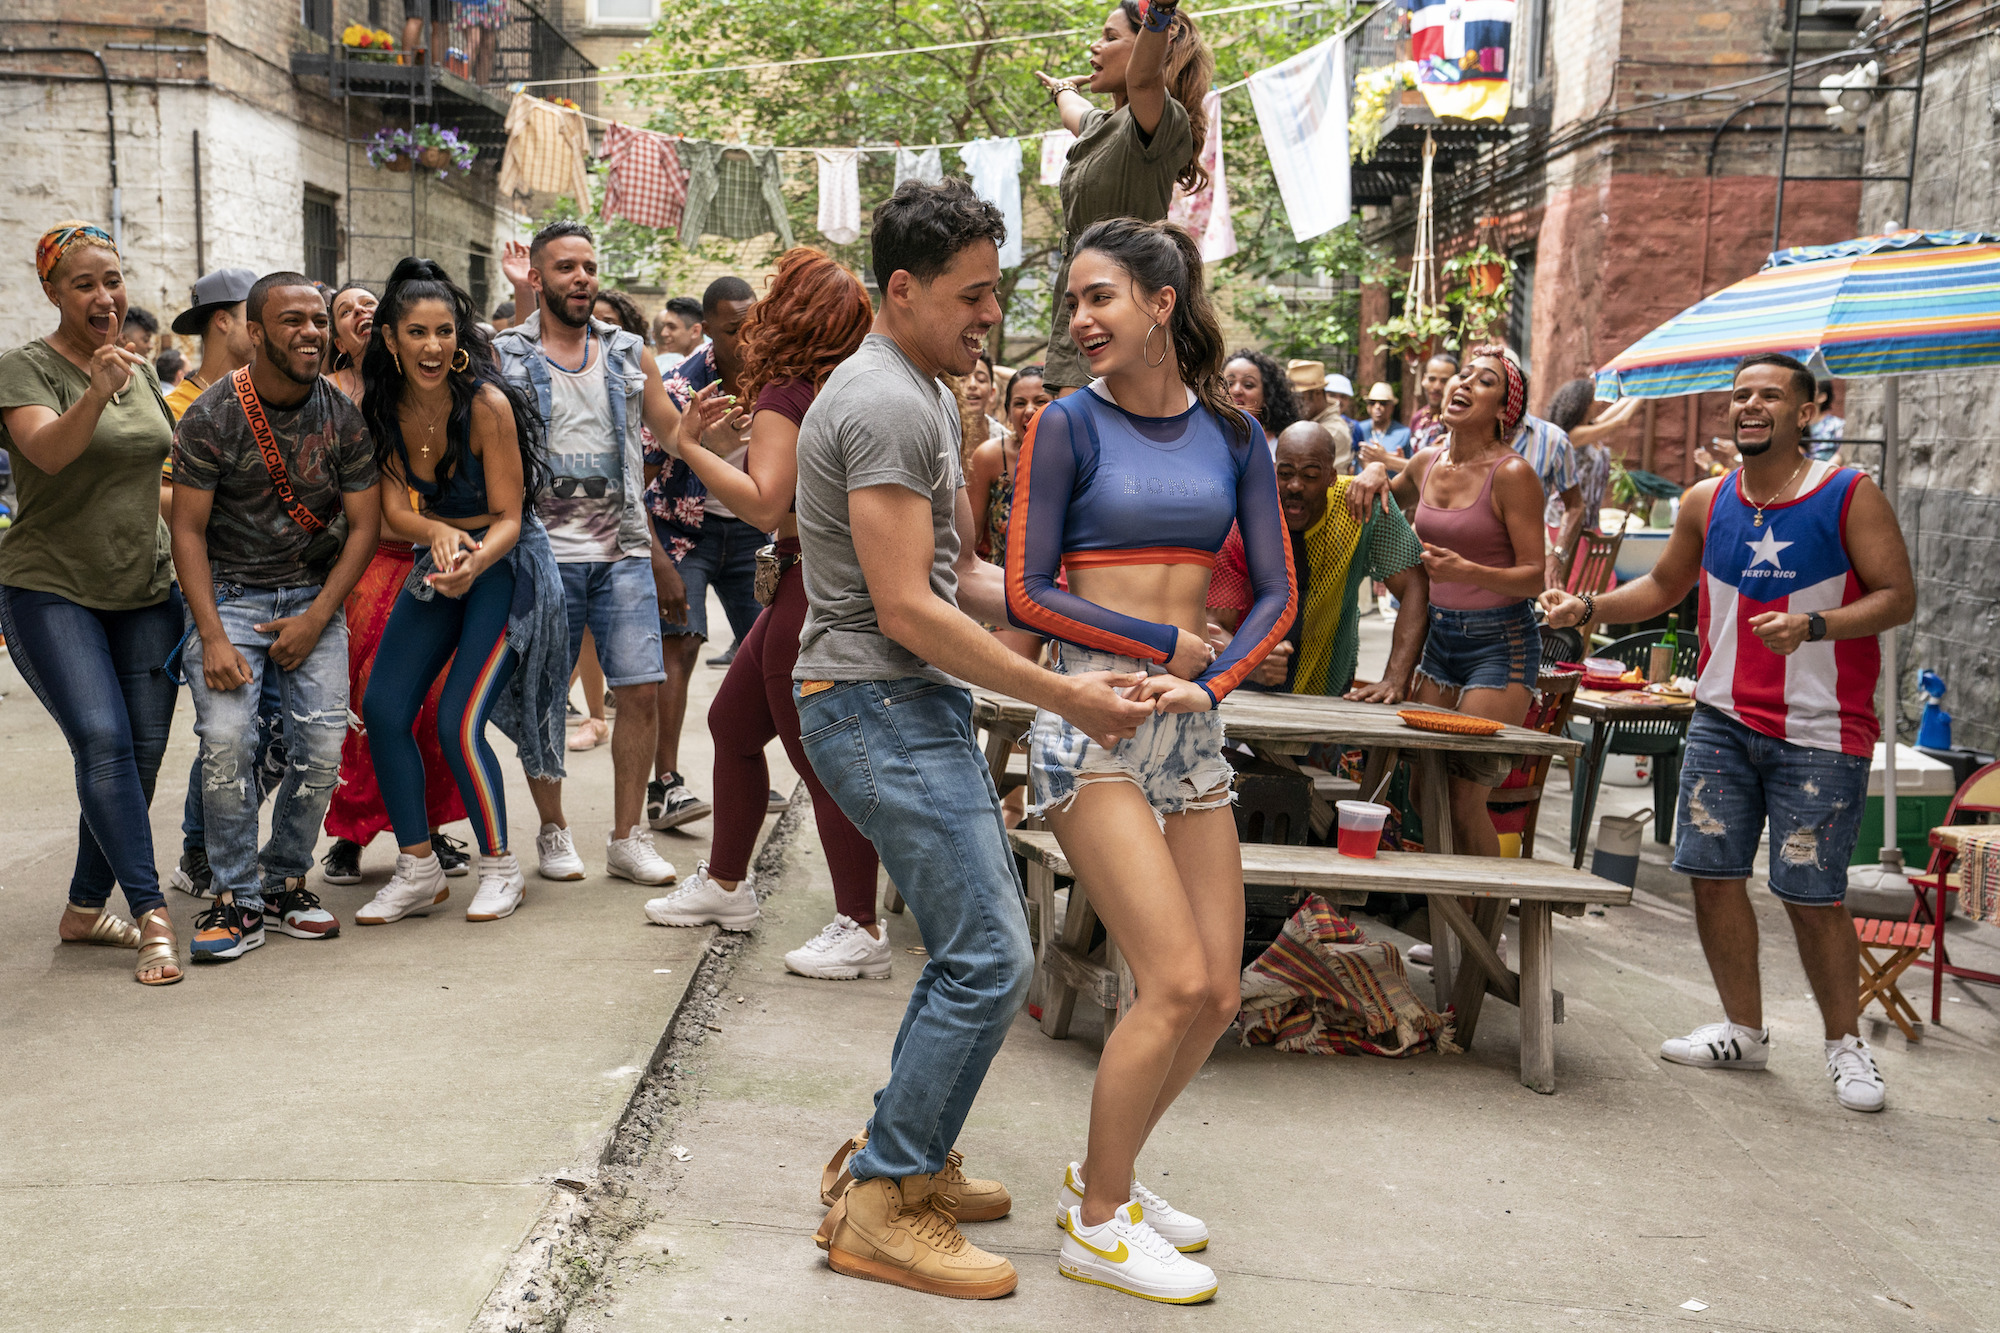 TRAILER: 'In the Heights' Movie Is a Vibrant, Colorful and Music-Filled Celebration of Latinos